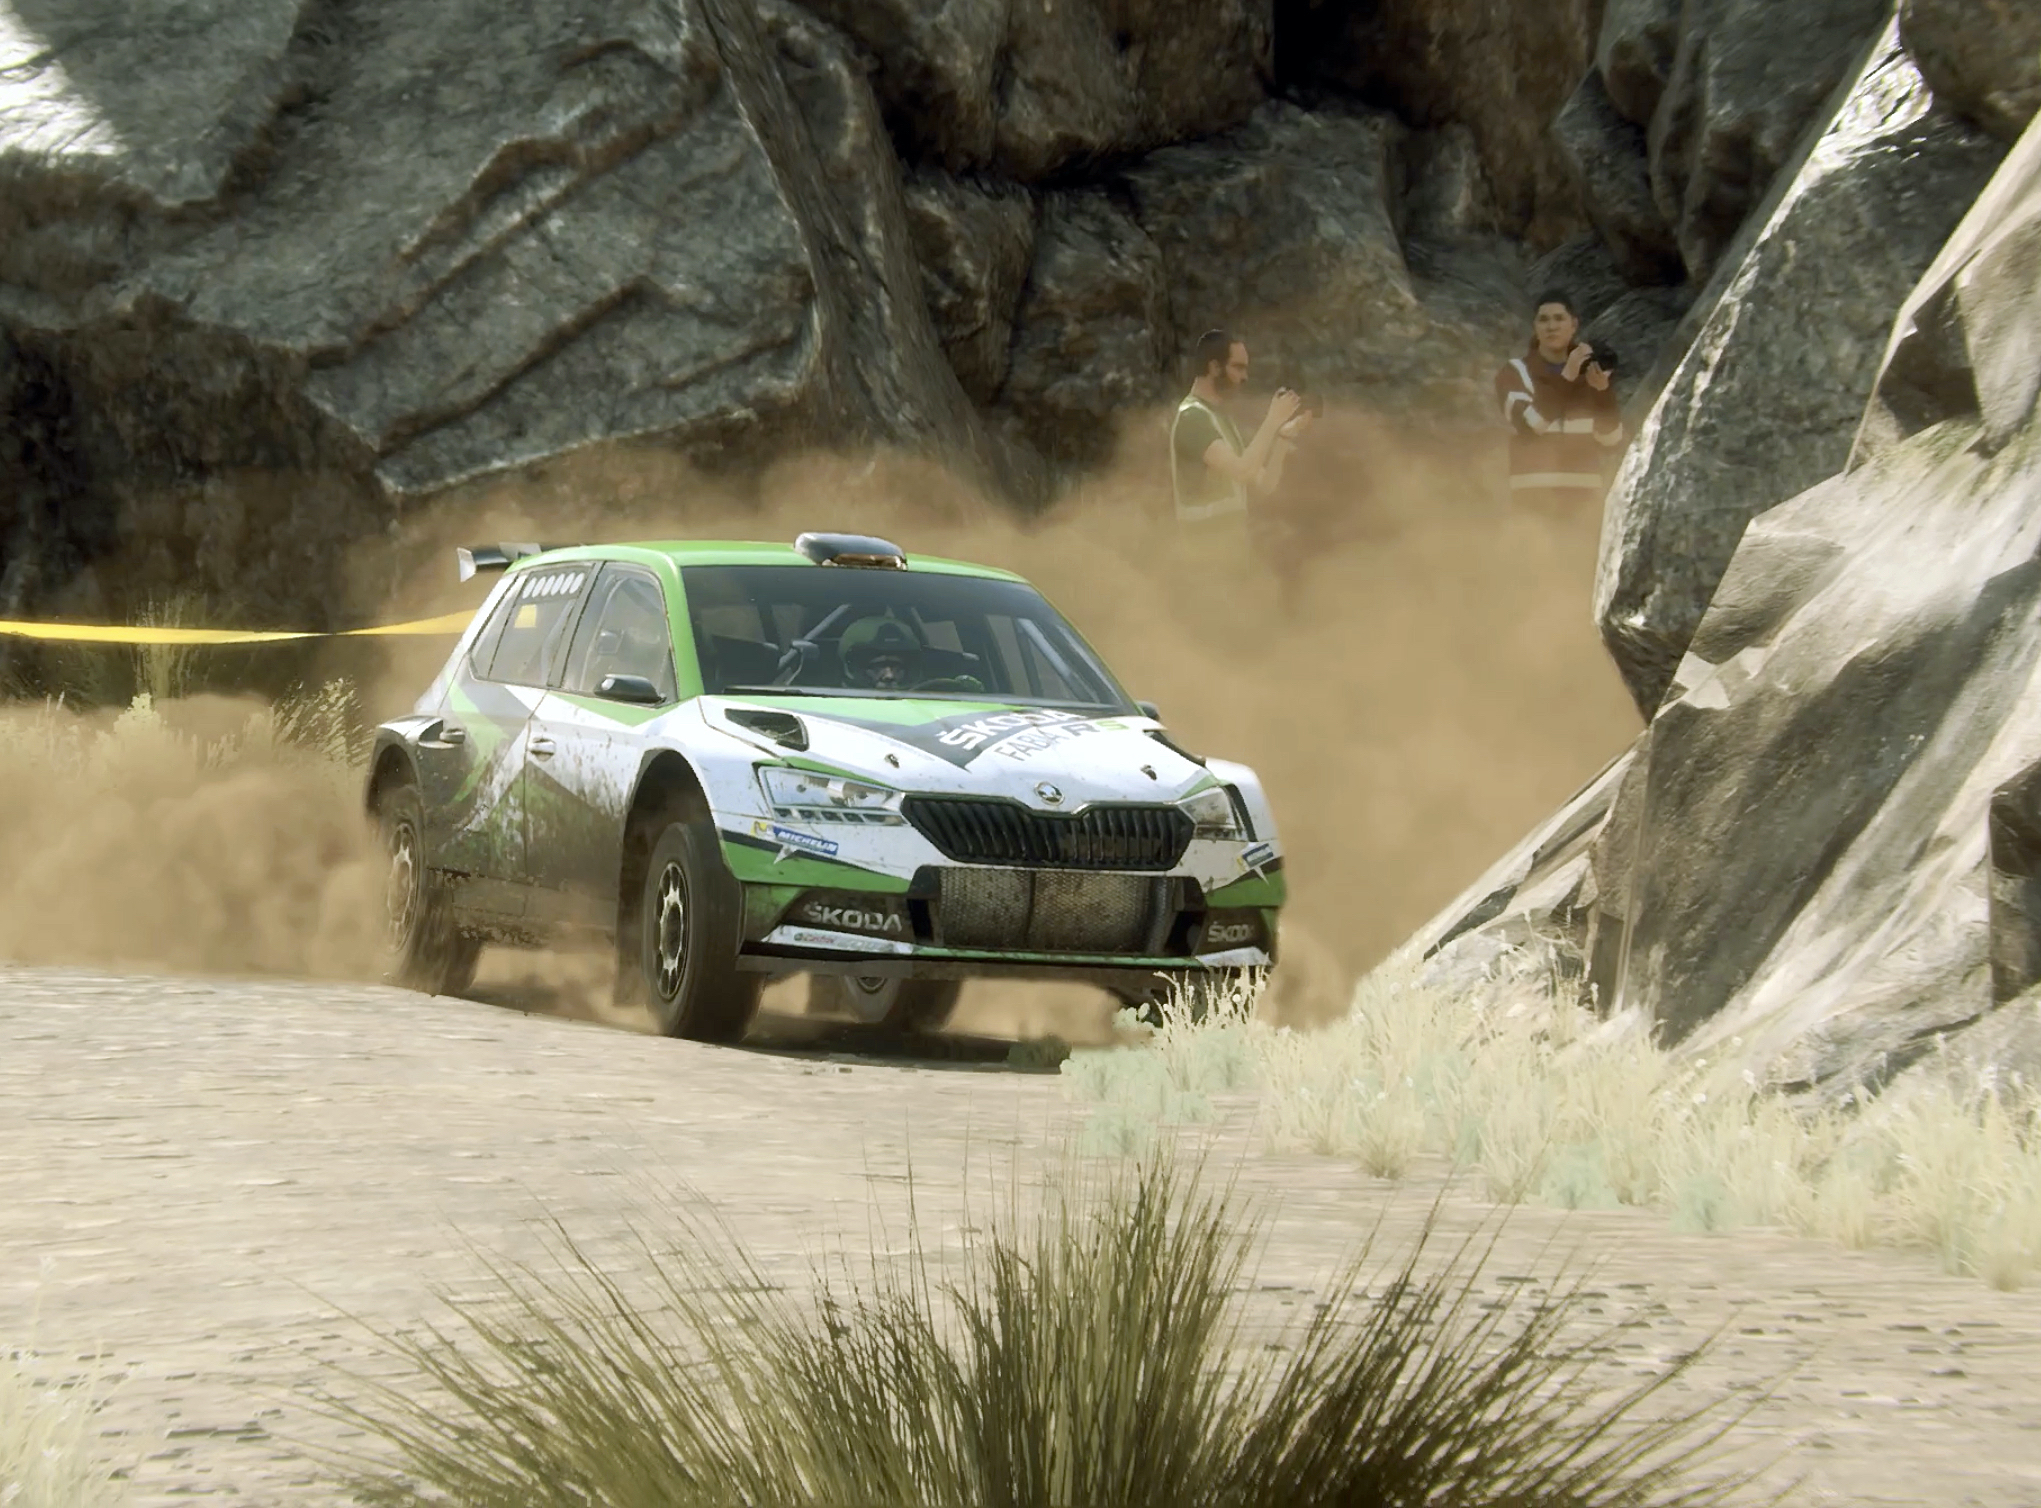 SKODA Motorsport launches eSports series offering virtual competition between fans and rally aces - Image 2